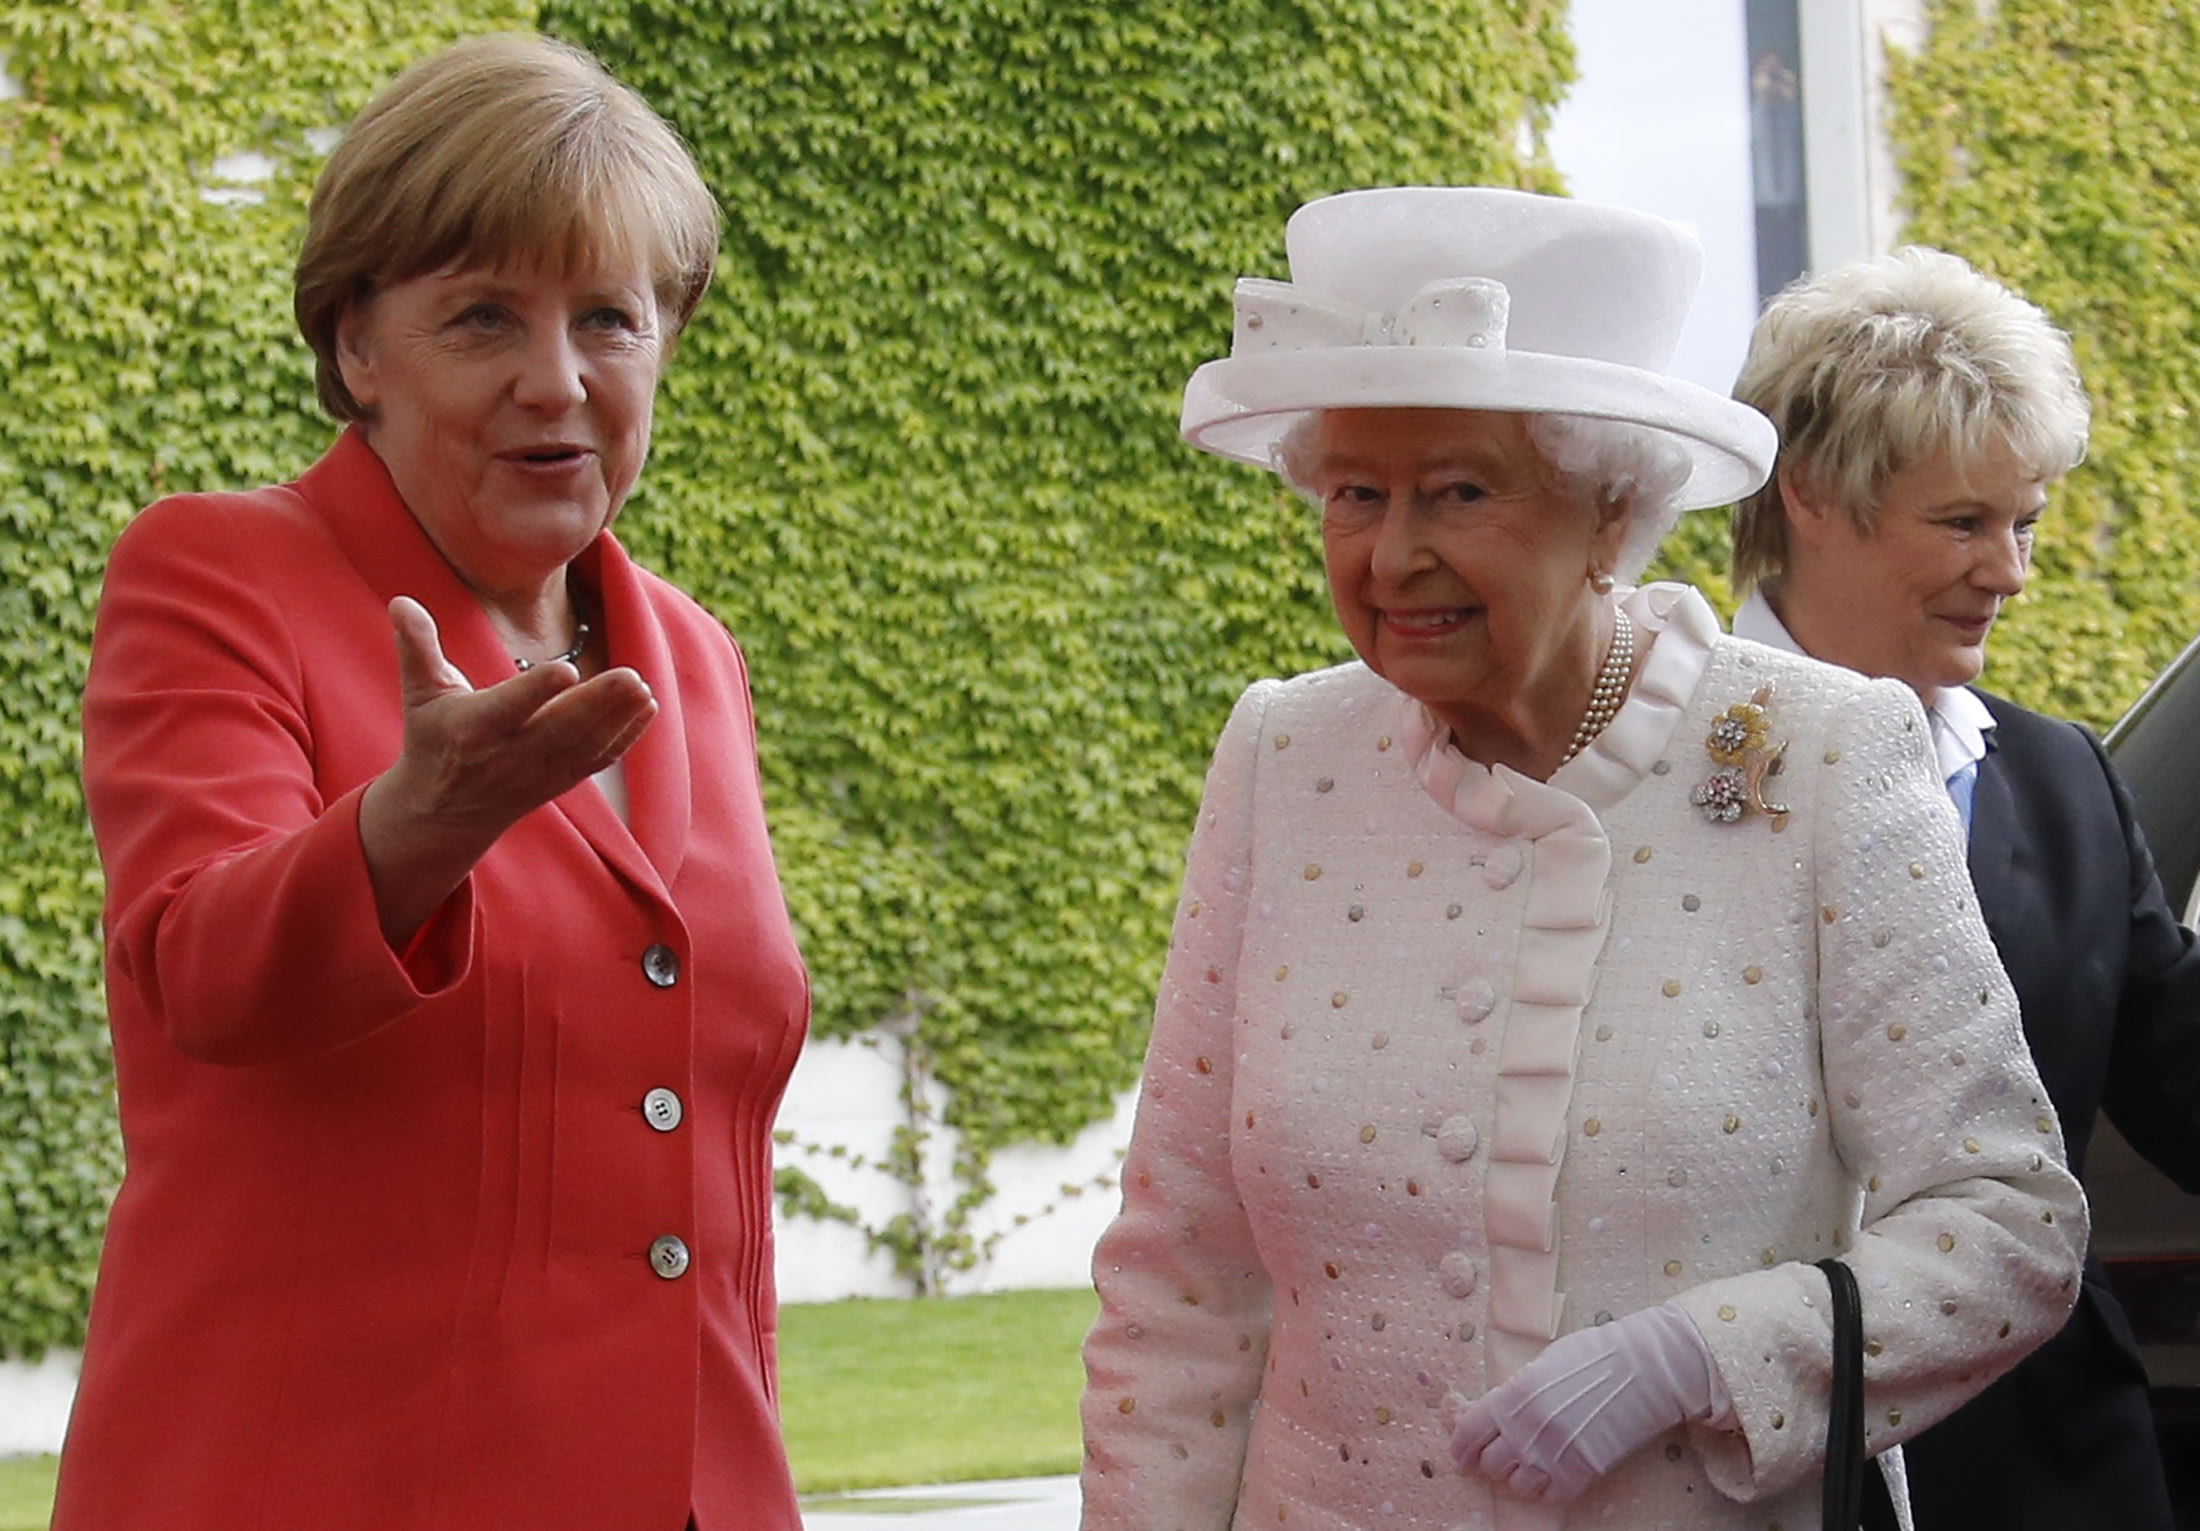 The world's most powerful woman met the world's most famous woman